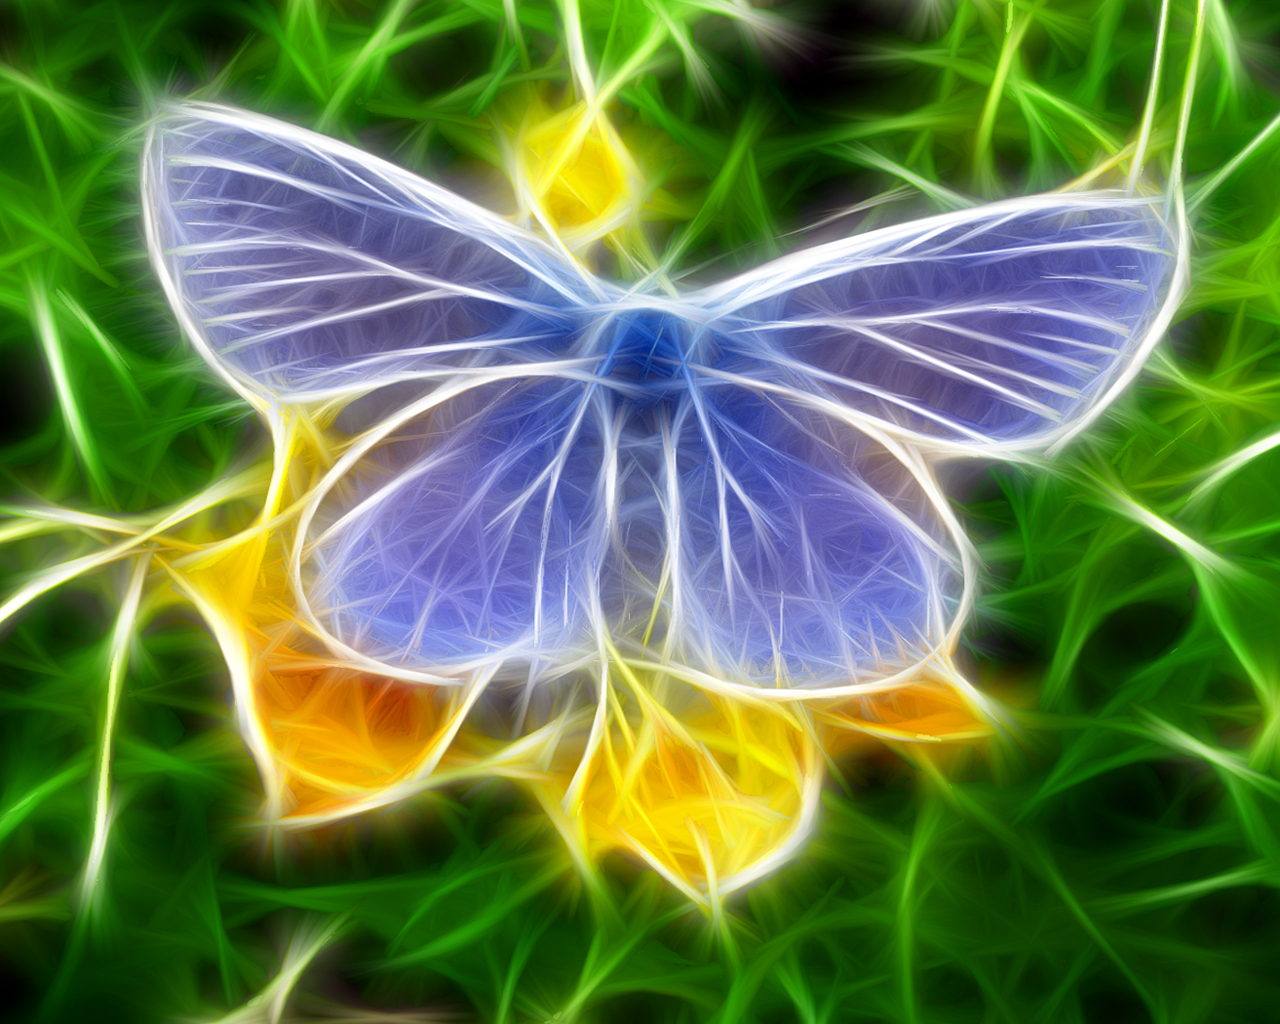 Wallpapers Background Butterfly Hd Wallpaper Butterfly 3d Wallpapers 1280x1024